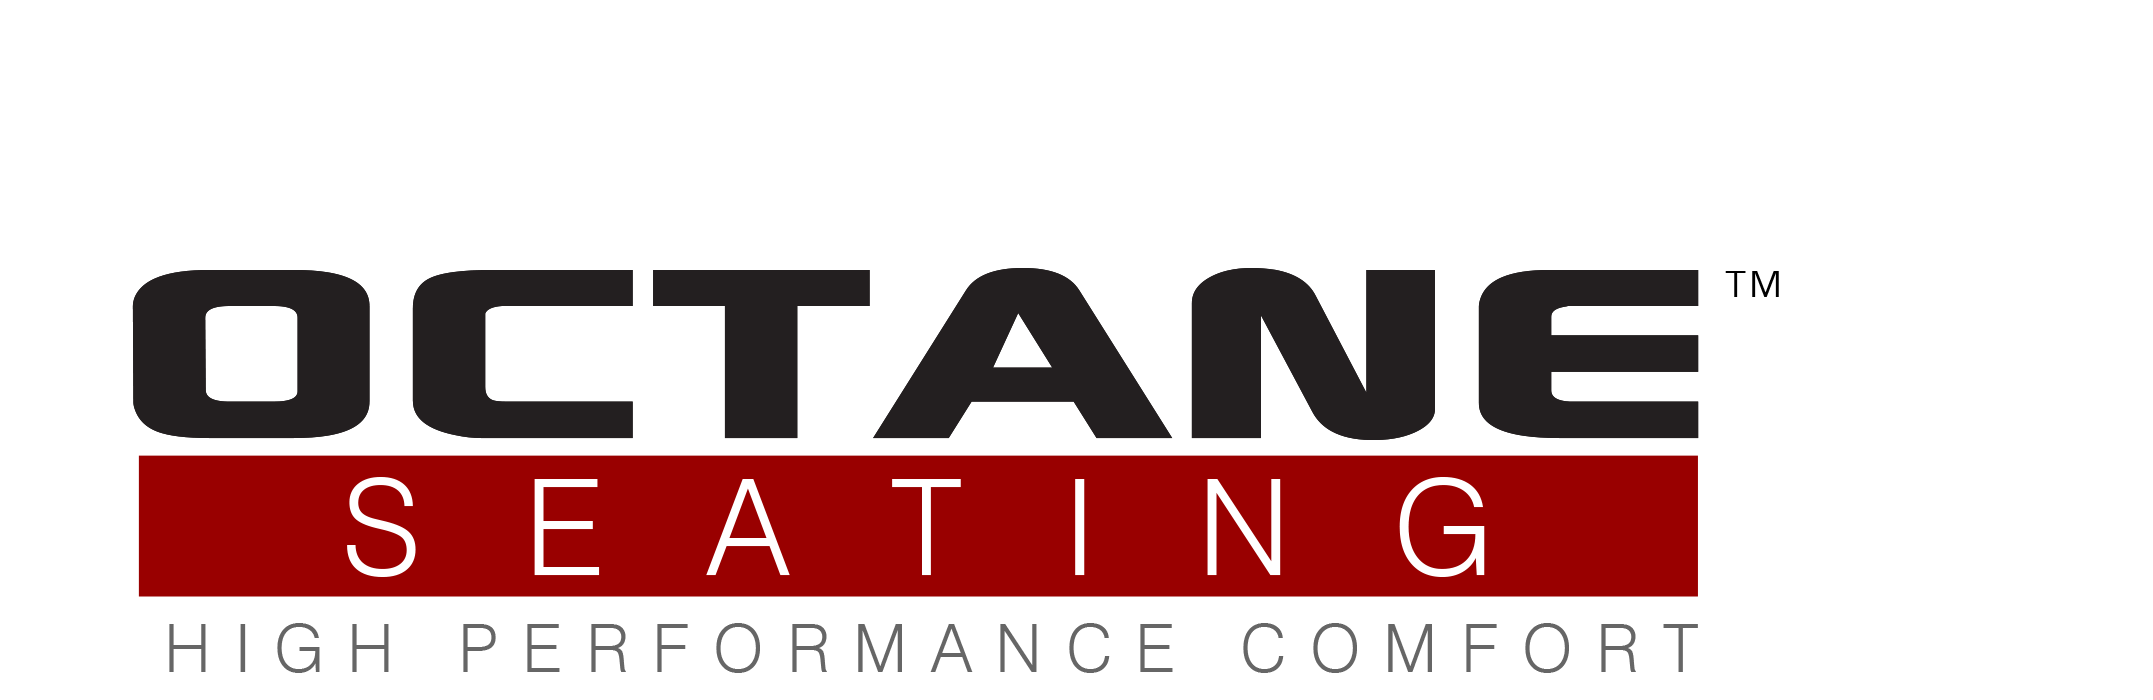 Octane Seating Logo